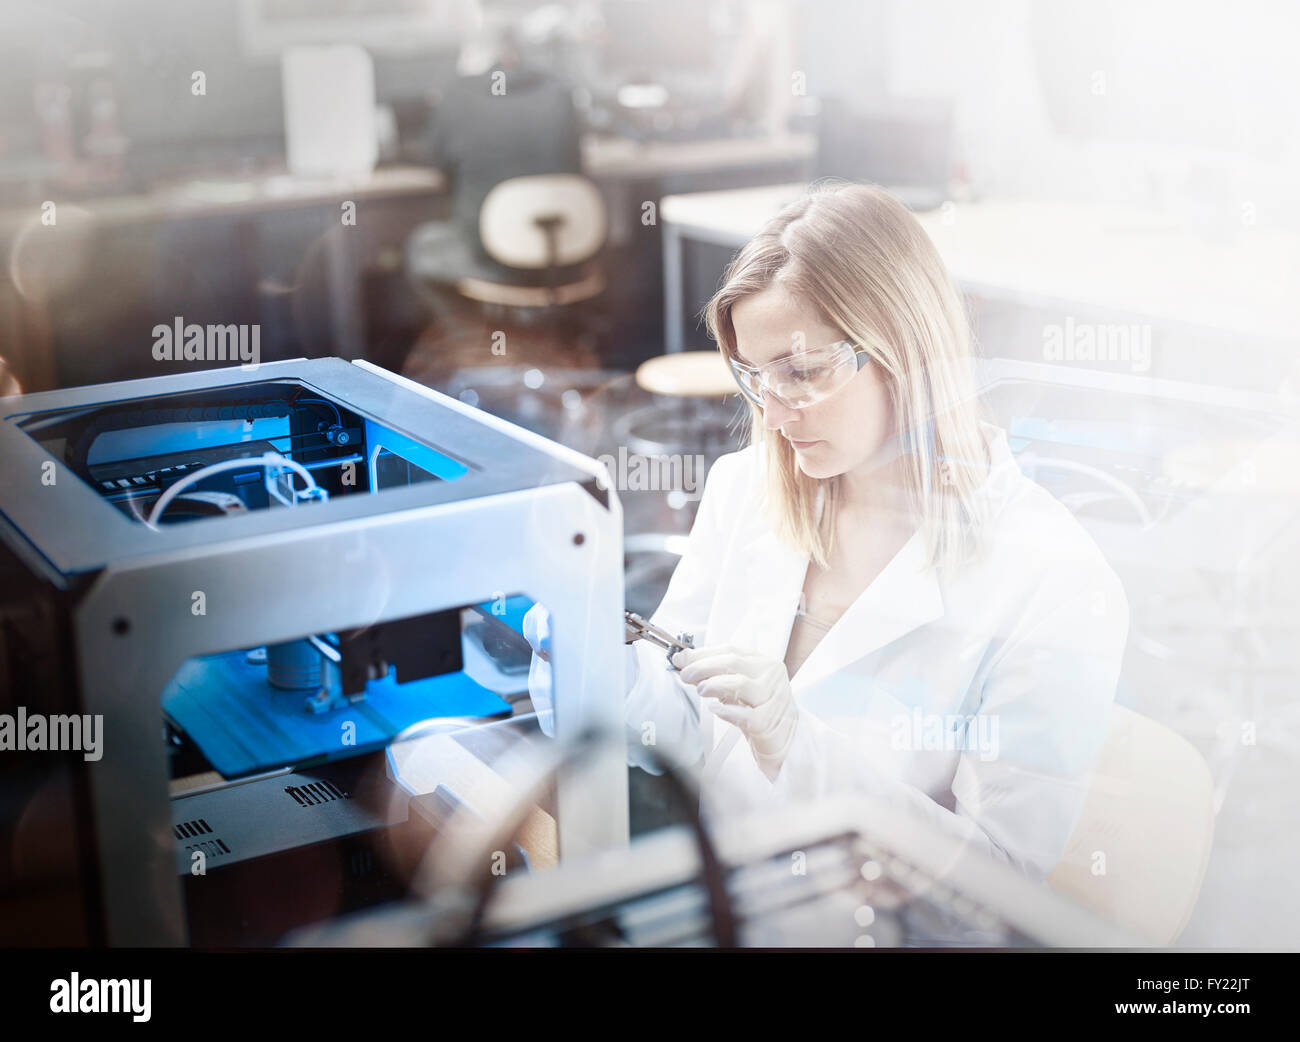 Female technician, 25-30 years, in white lab coat and goggles, controlling printing of a 3D printer, Wattens, Innsbruck - Stock Image